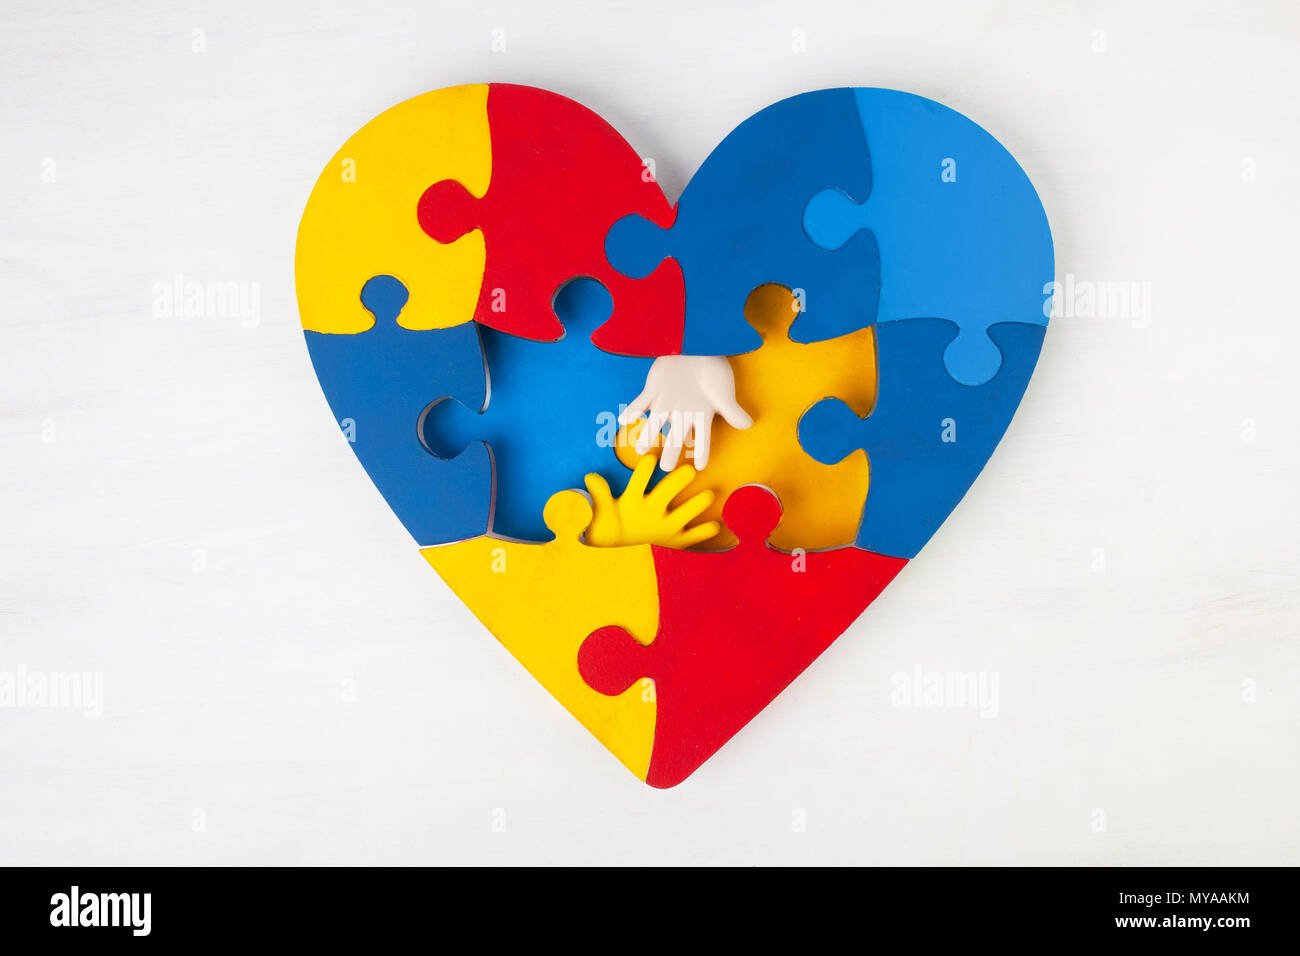 Heart Disease Awareness Stock Photos Heart Disease Awareness Stock